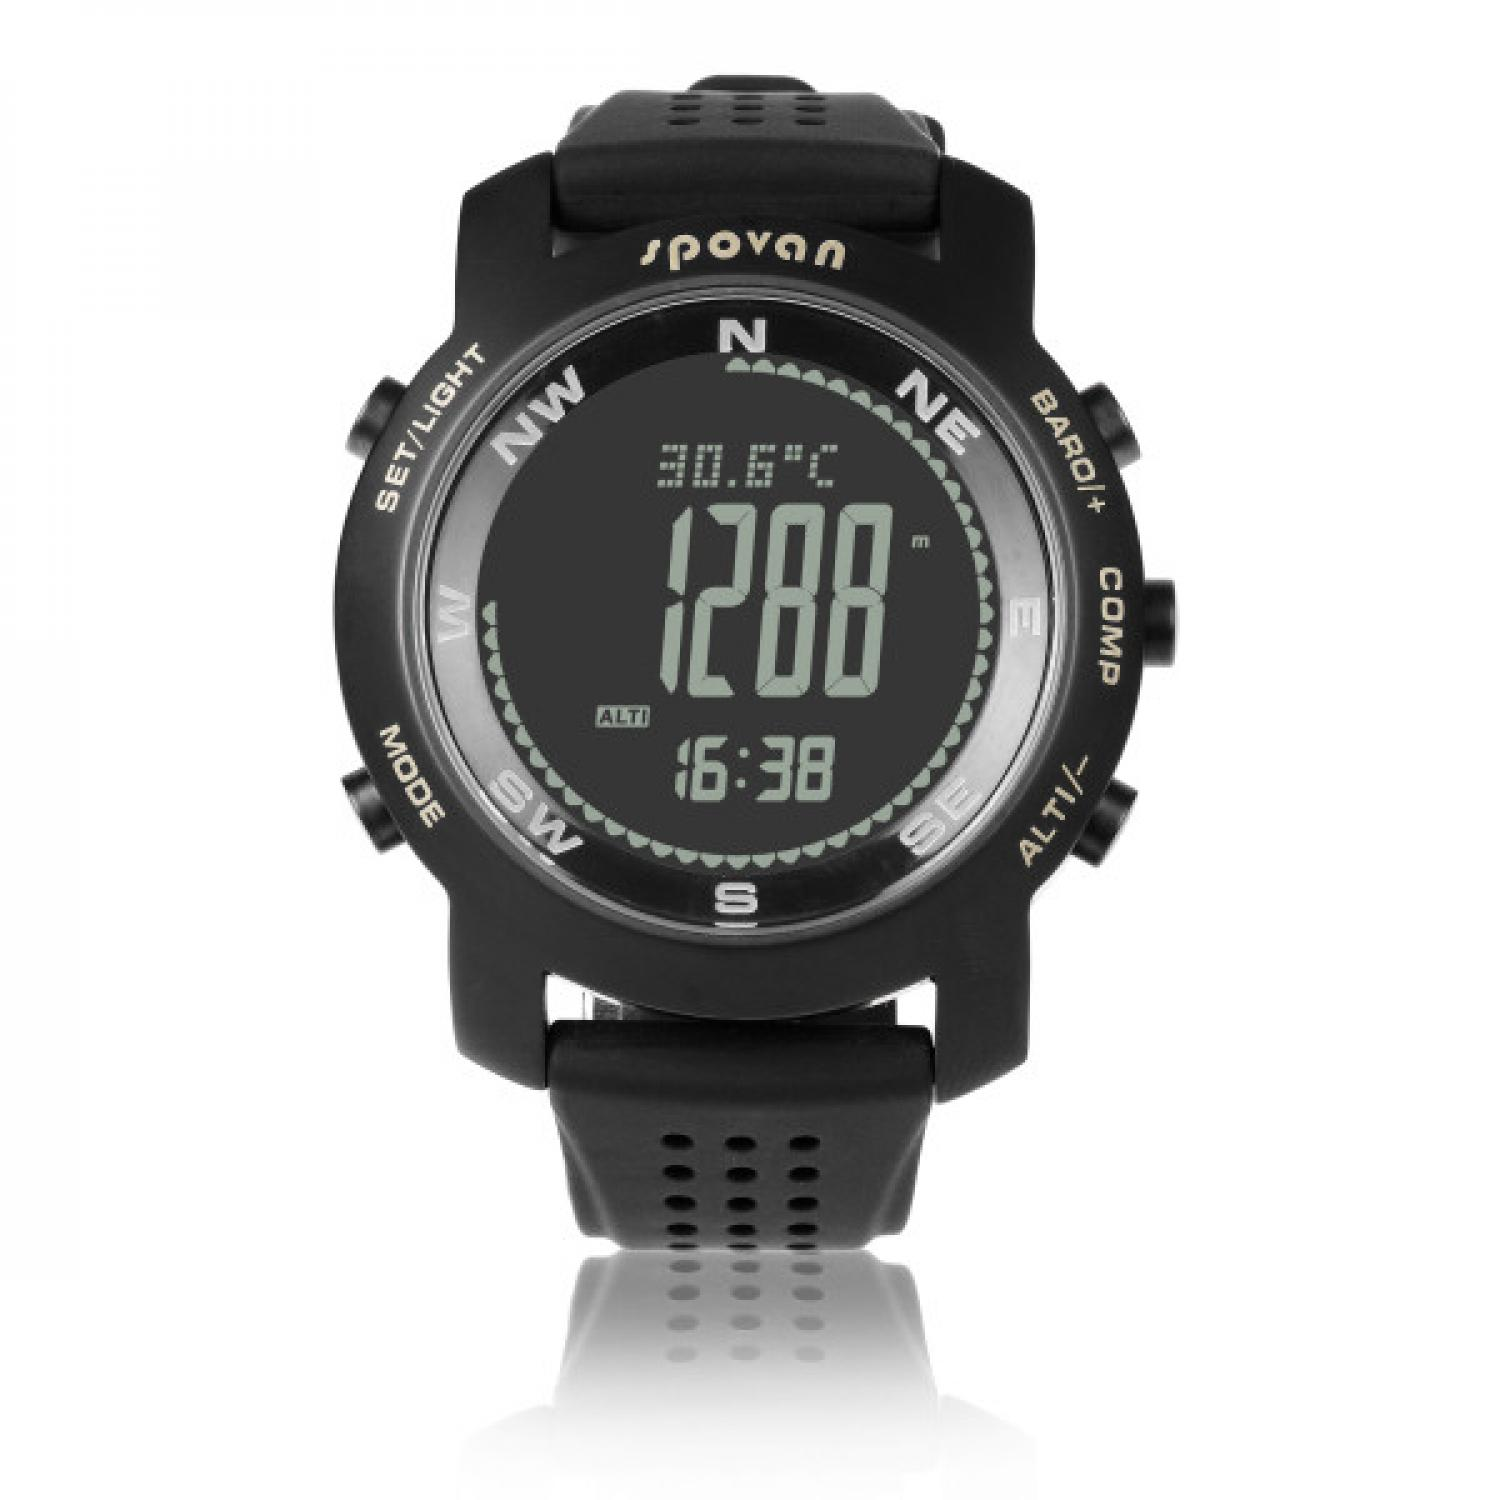 Spovan Bravo Plus Sport Watch for Outdoor Traveling